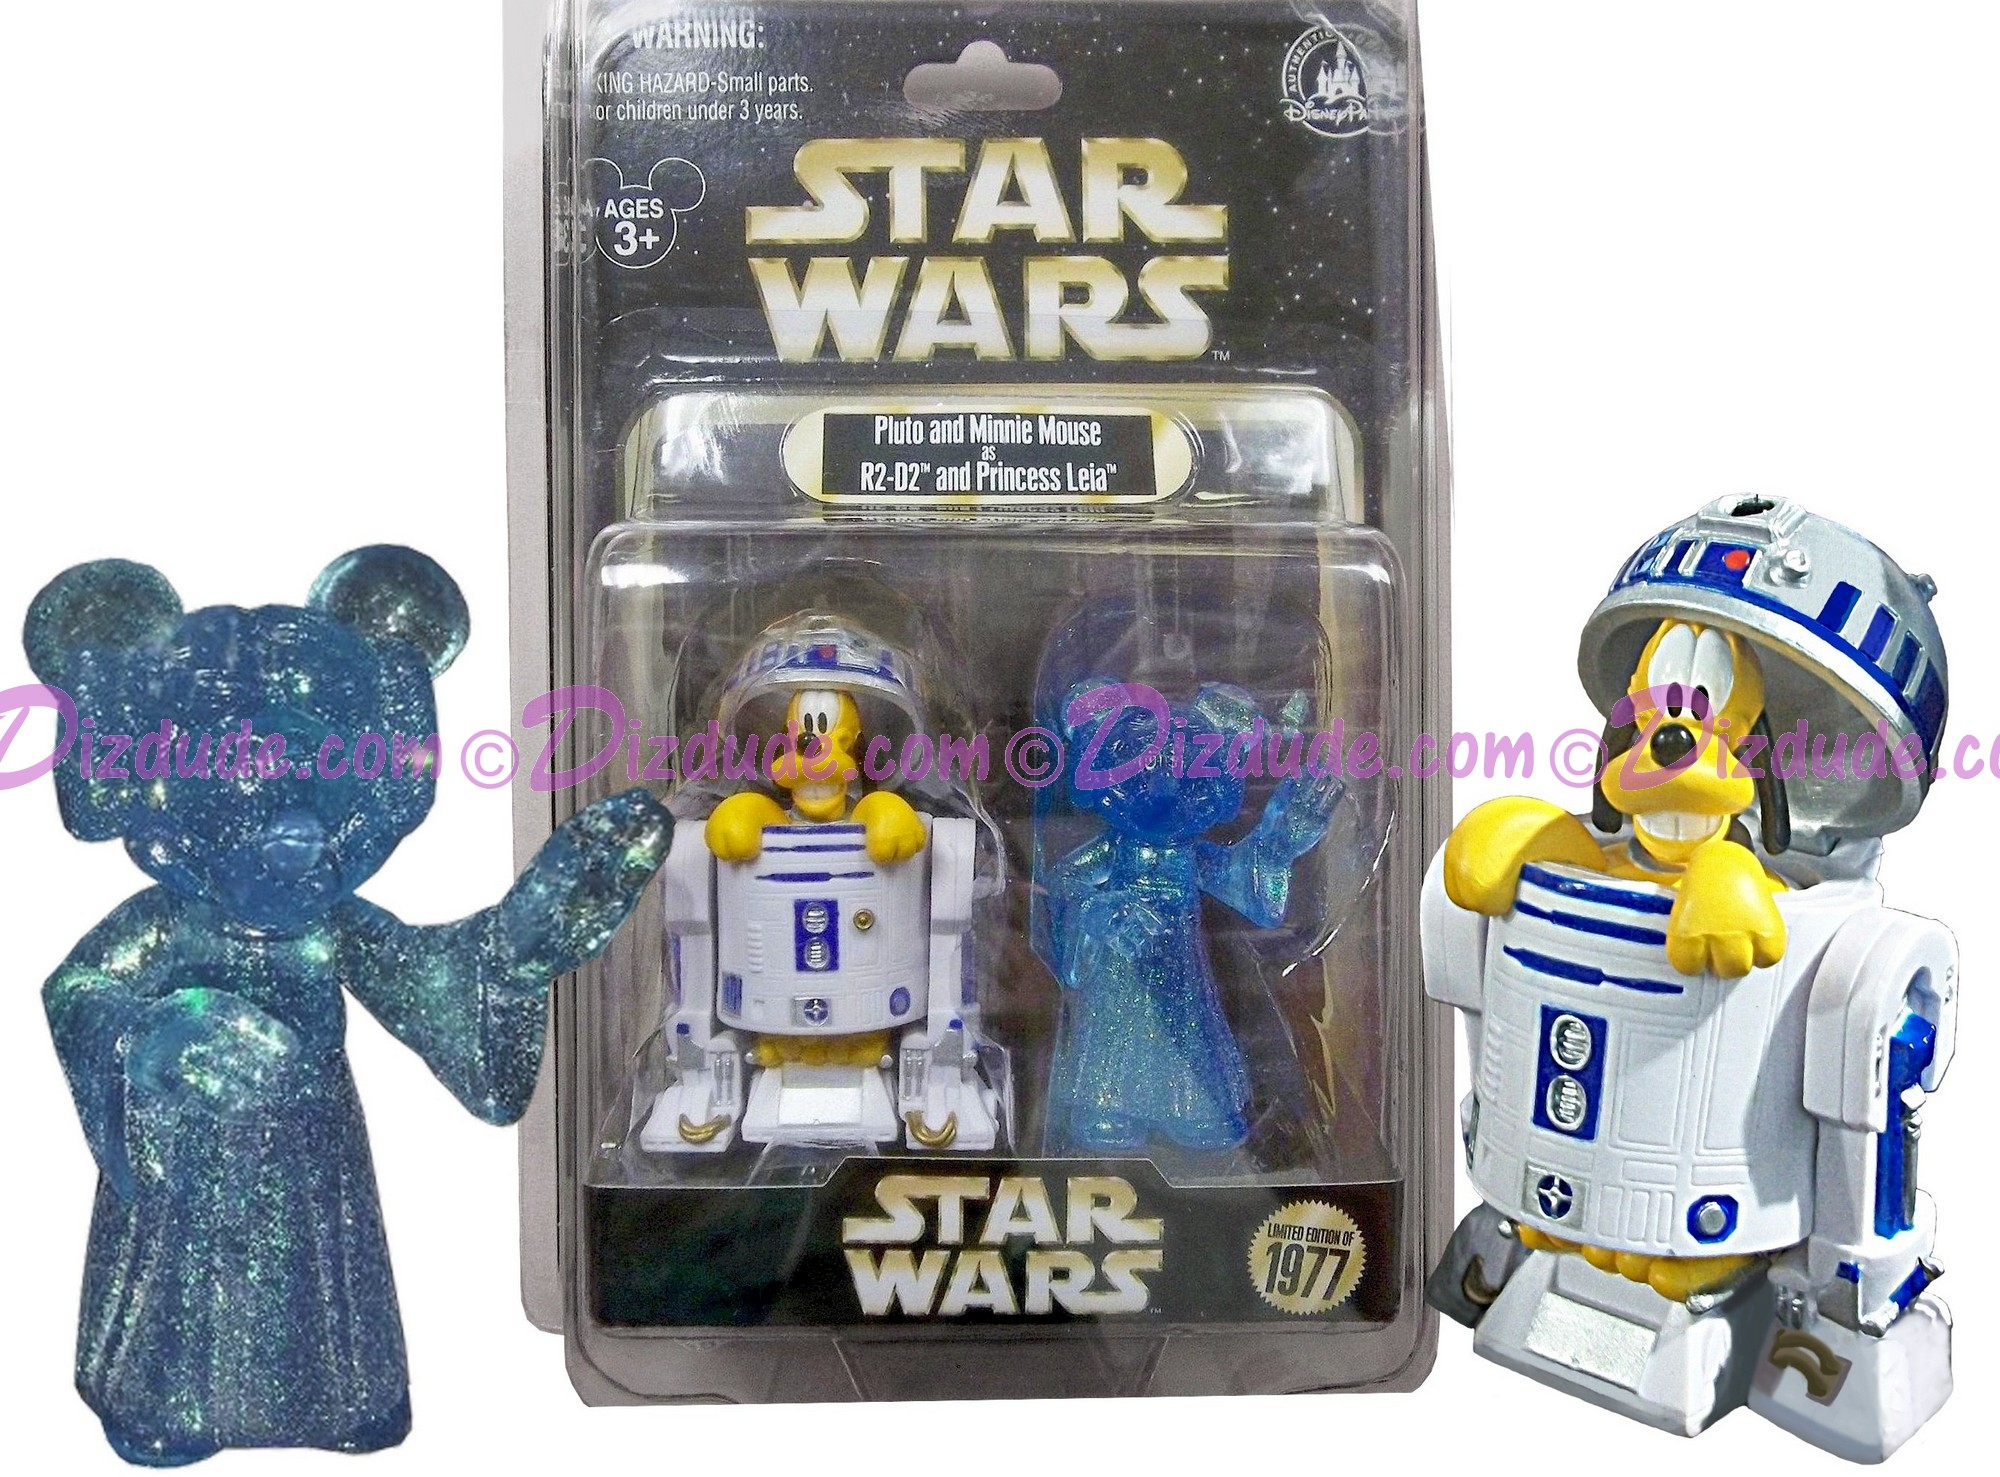 Disney Star Wars Pluto as R2-D2 & Minnie Mouse as Princess Leia Action Figure Individually Numbered Limited Edition 1977 ~ Official Star Wars Weekends 2015